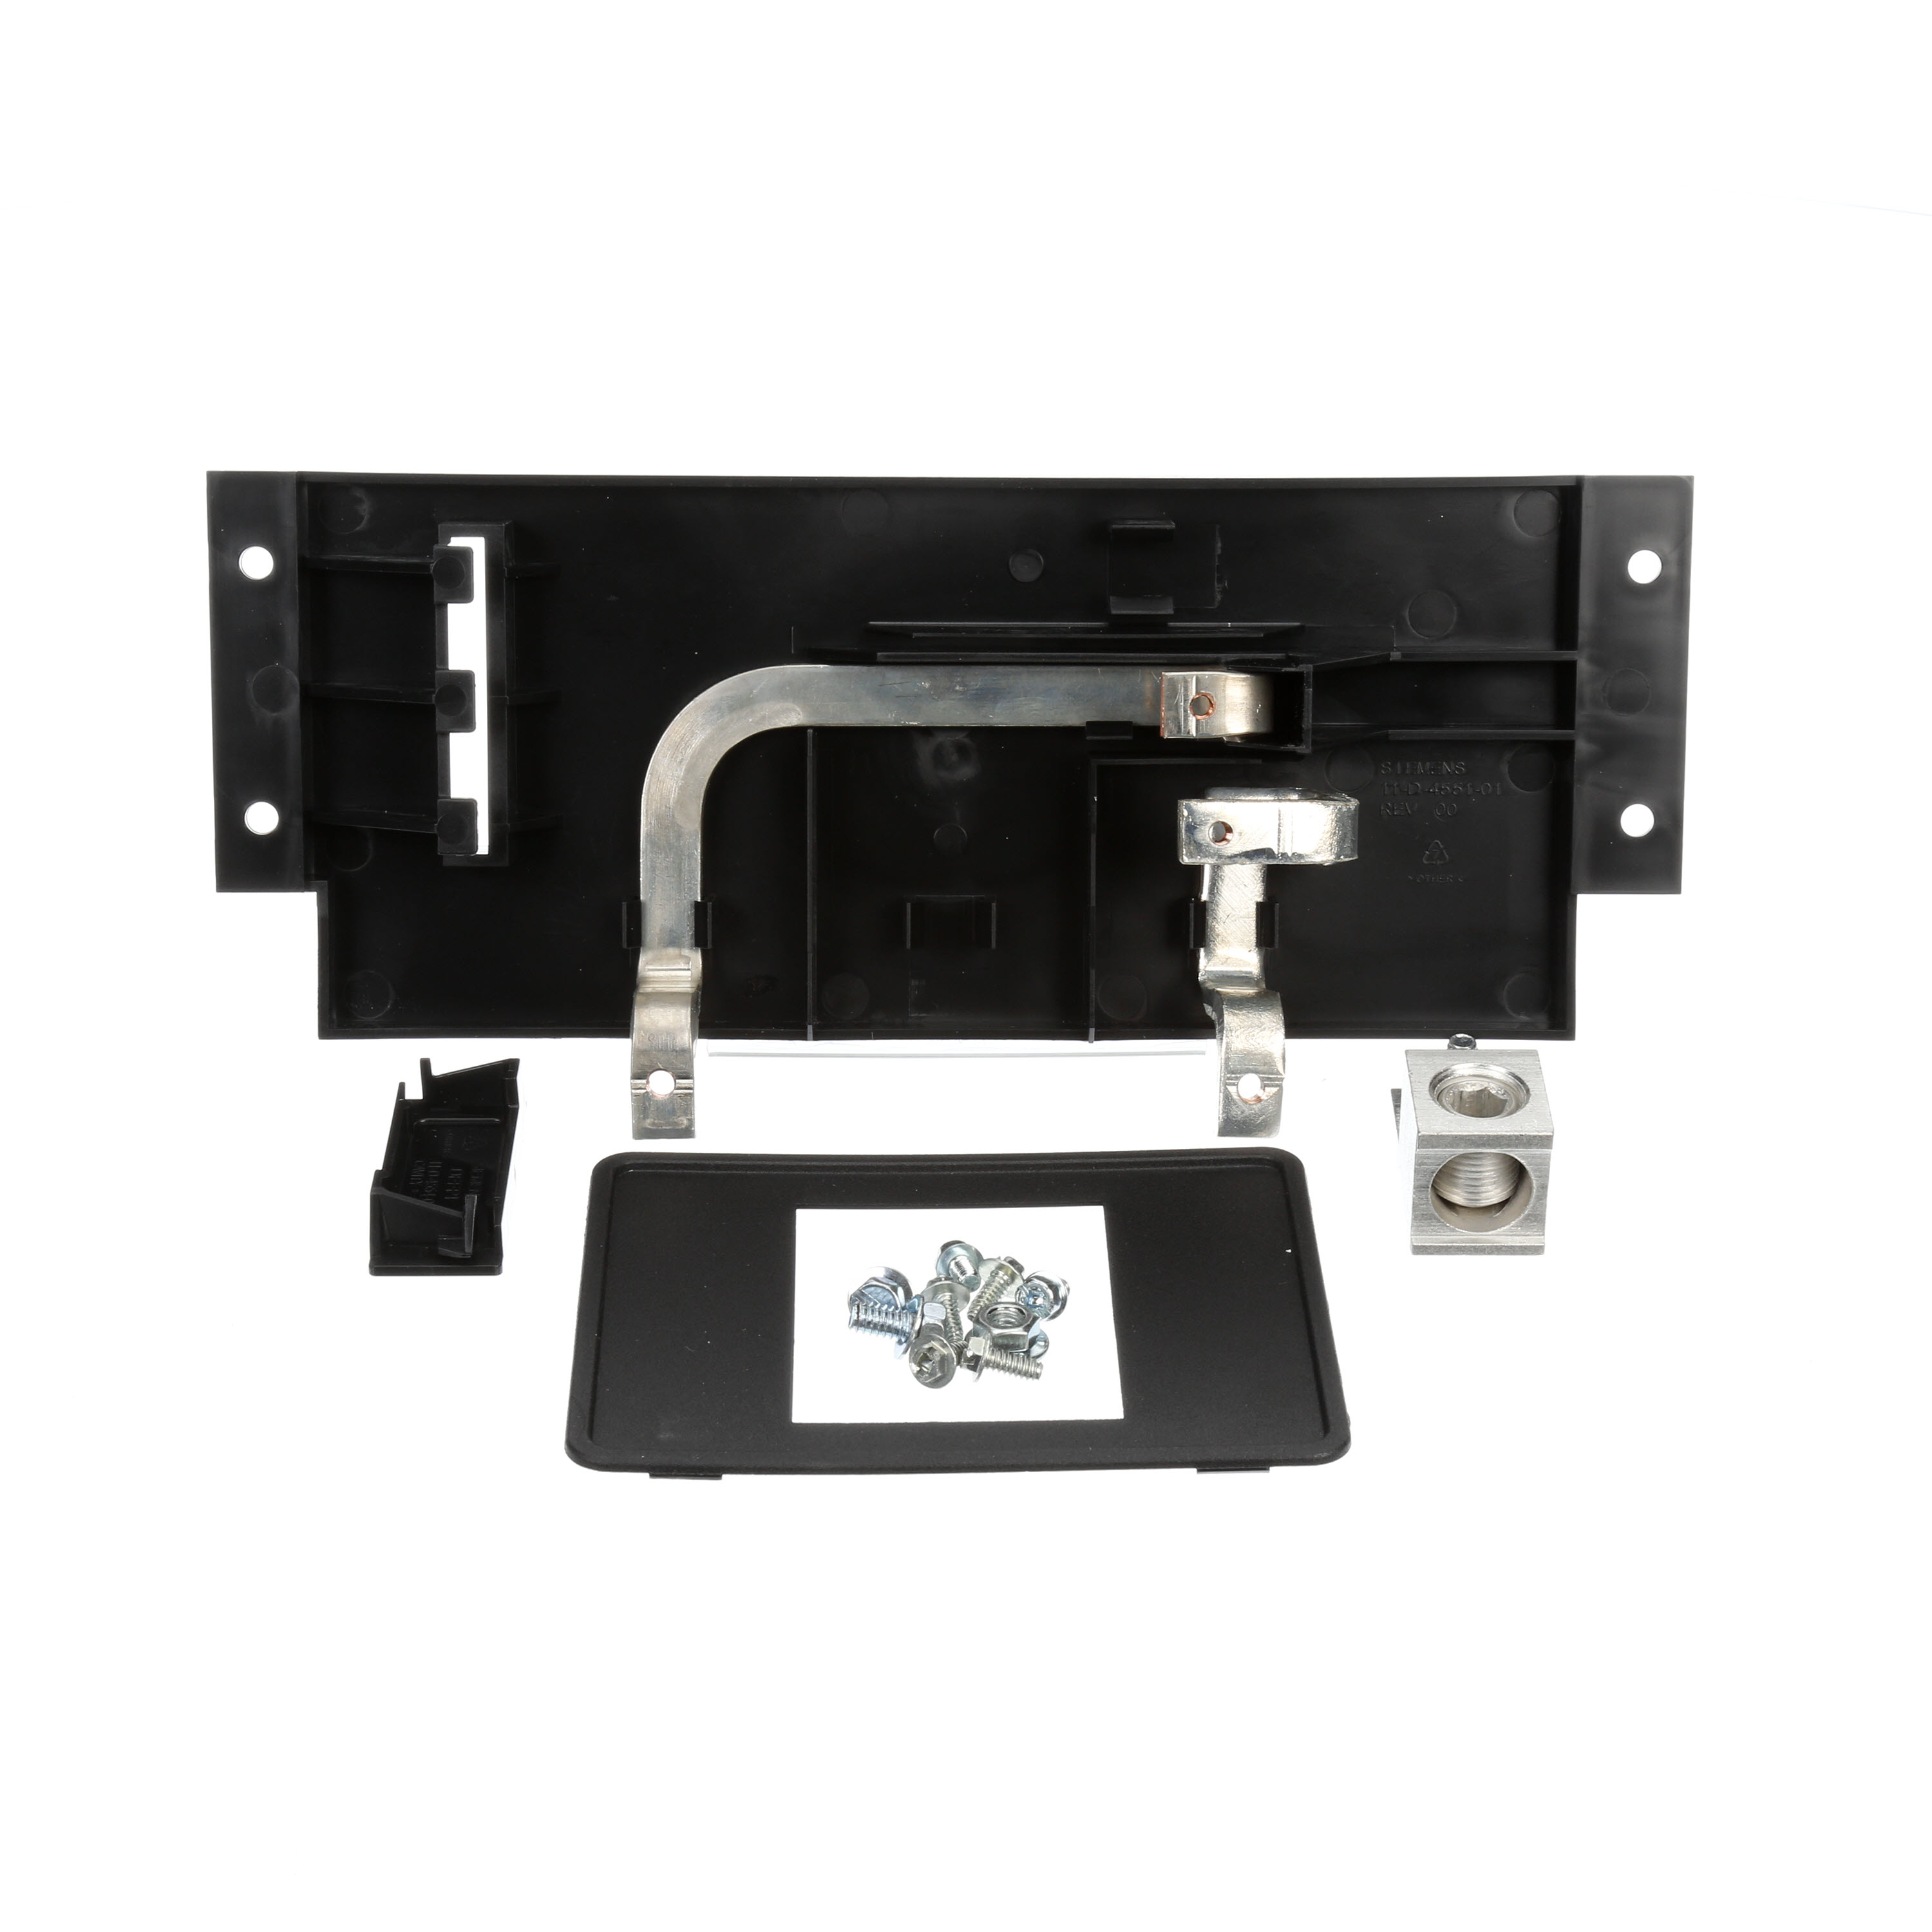 Siemens,MBKED1A,Breaker Mounting Kit, 1-Phase, 125A